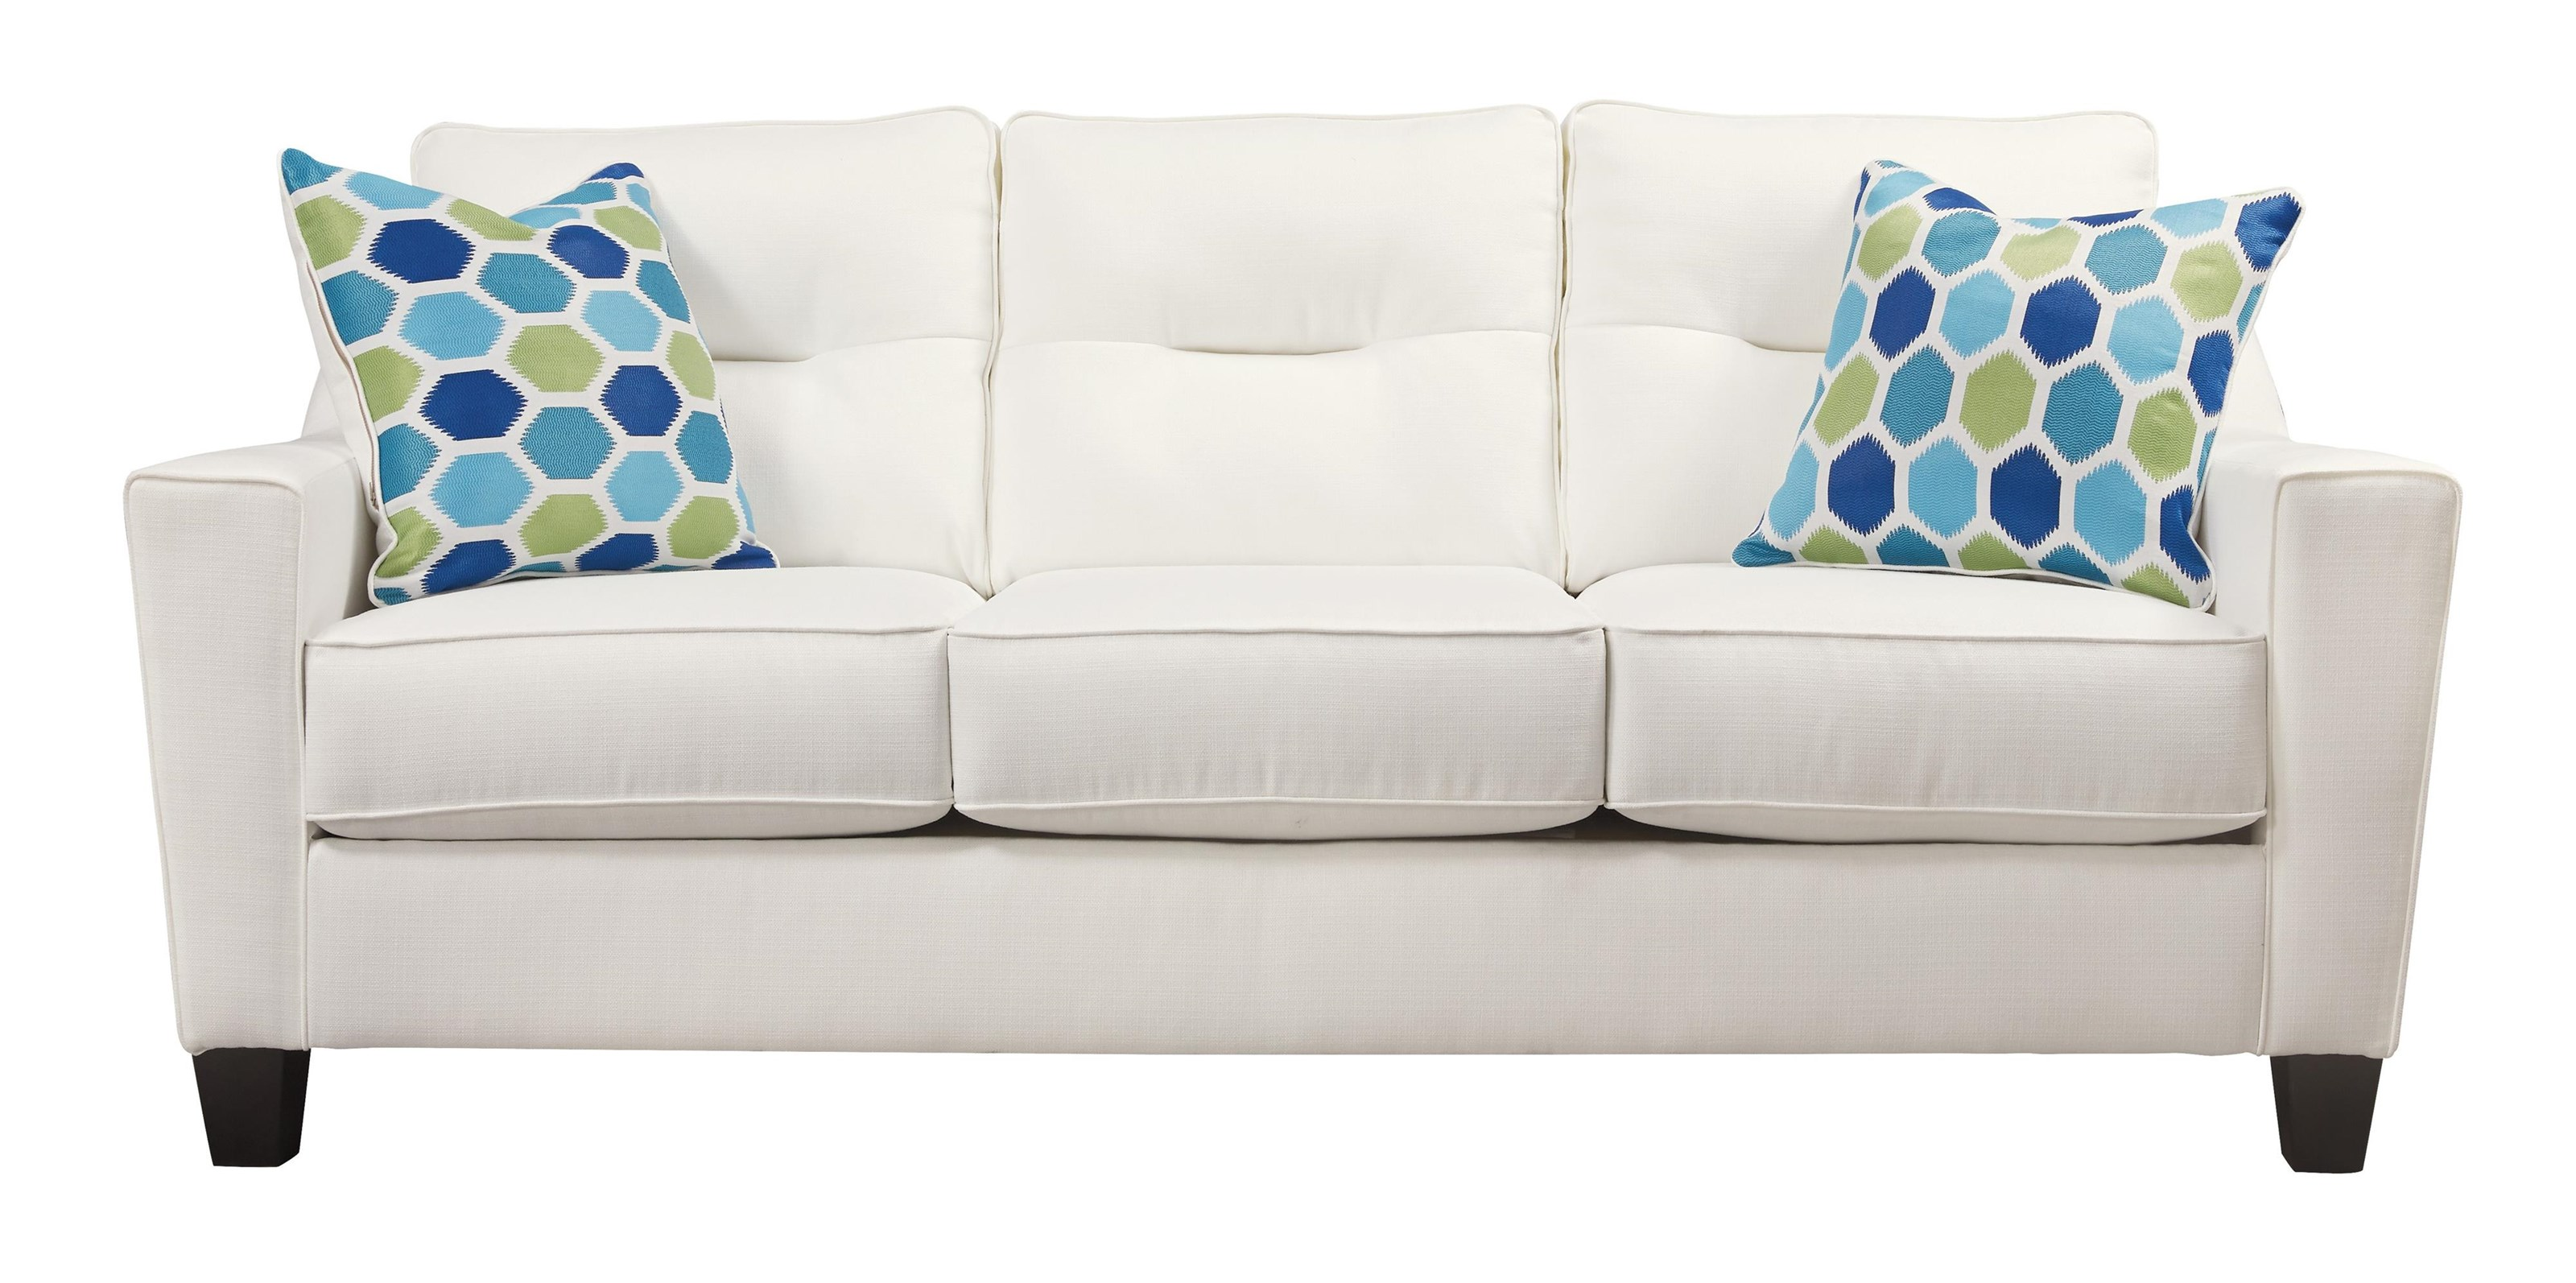 Signature Design by Ashley 0438 Sofa - Item Number: 6690438